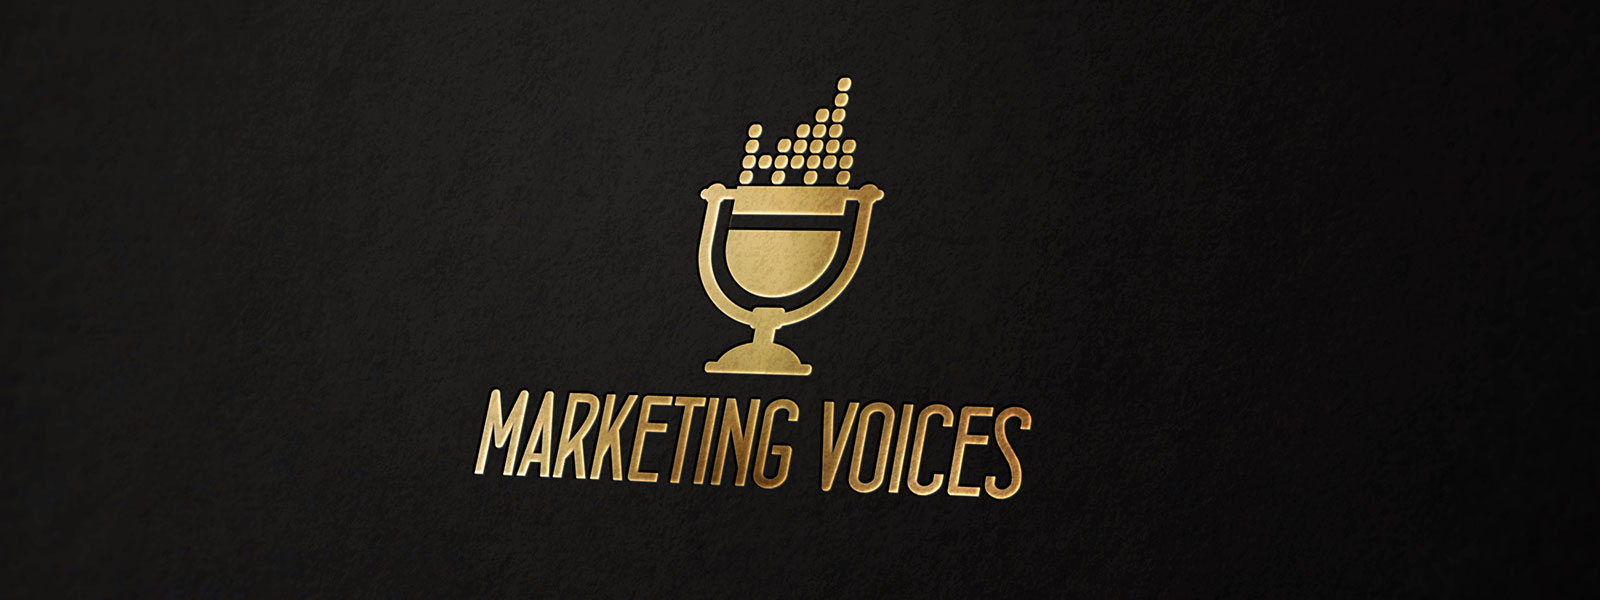 marketing-voices-